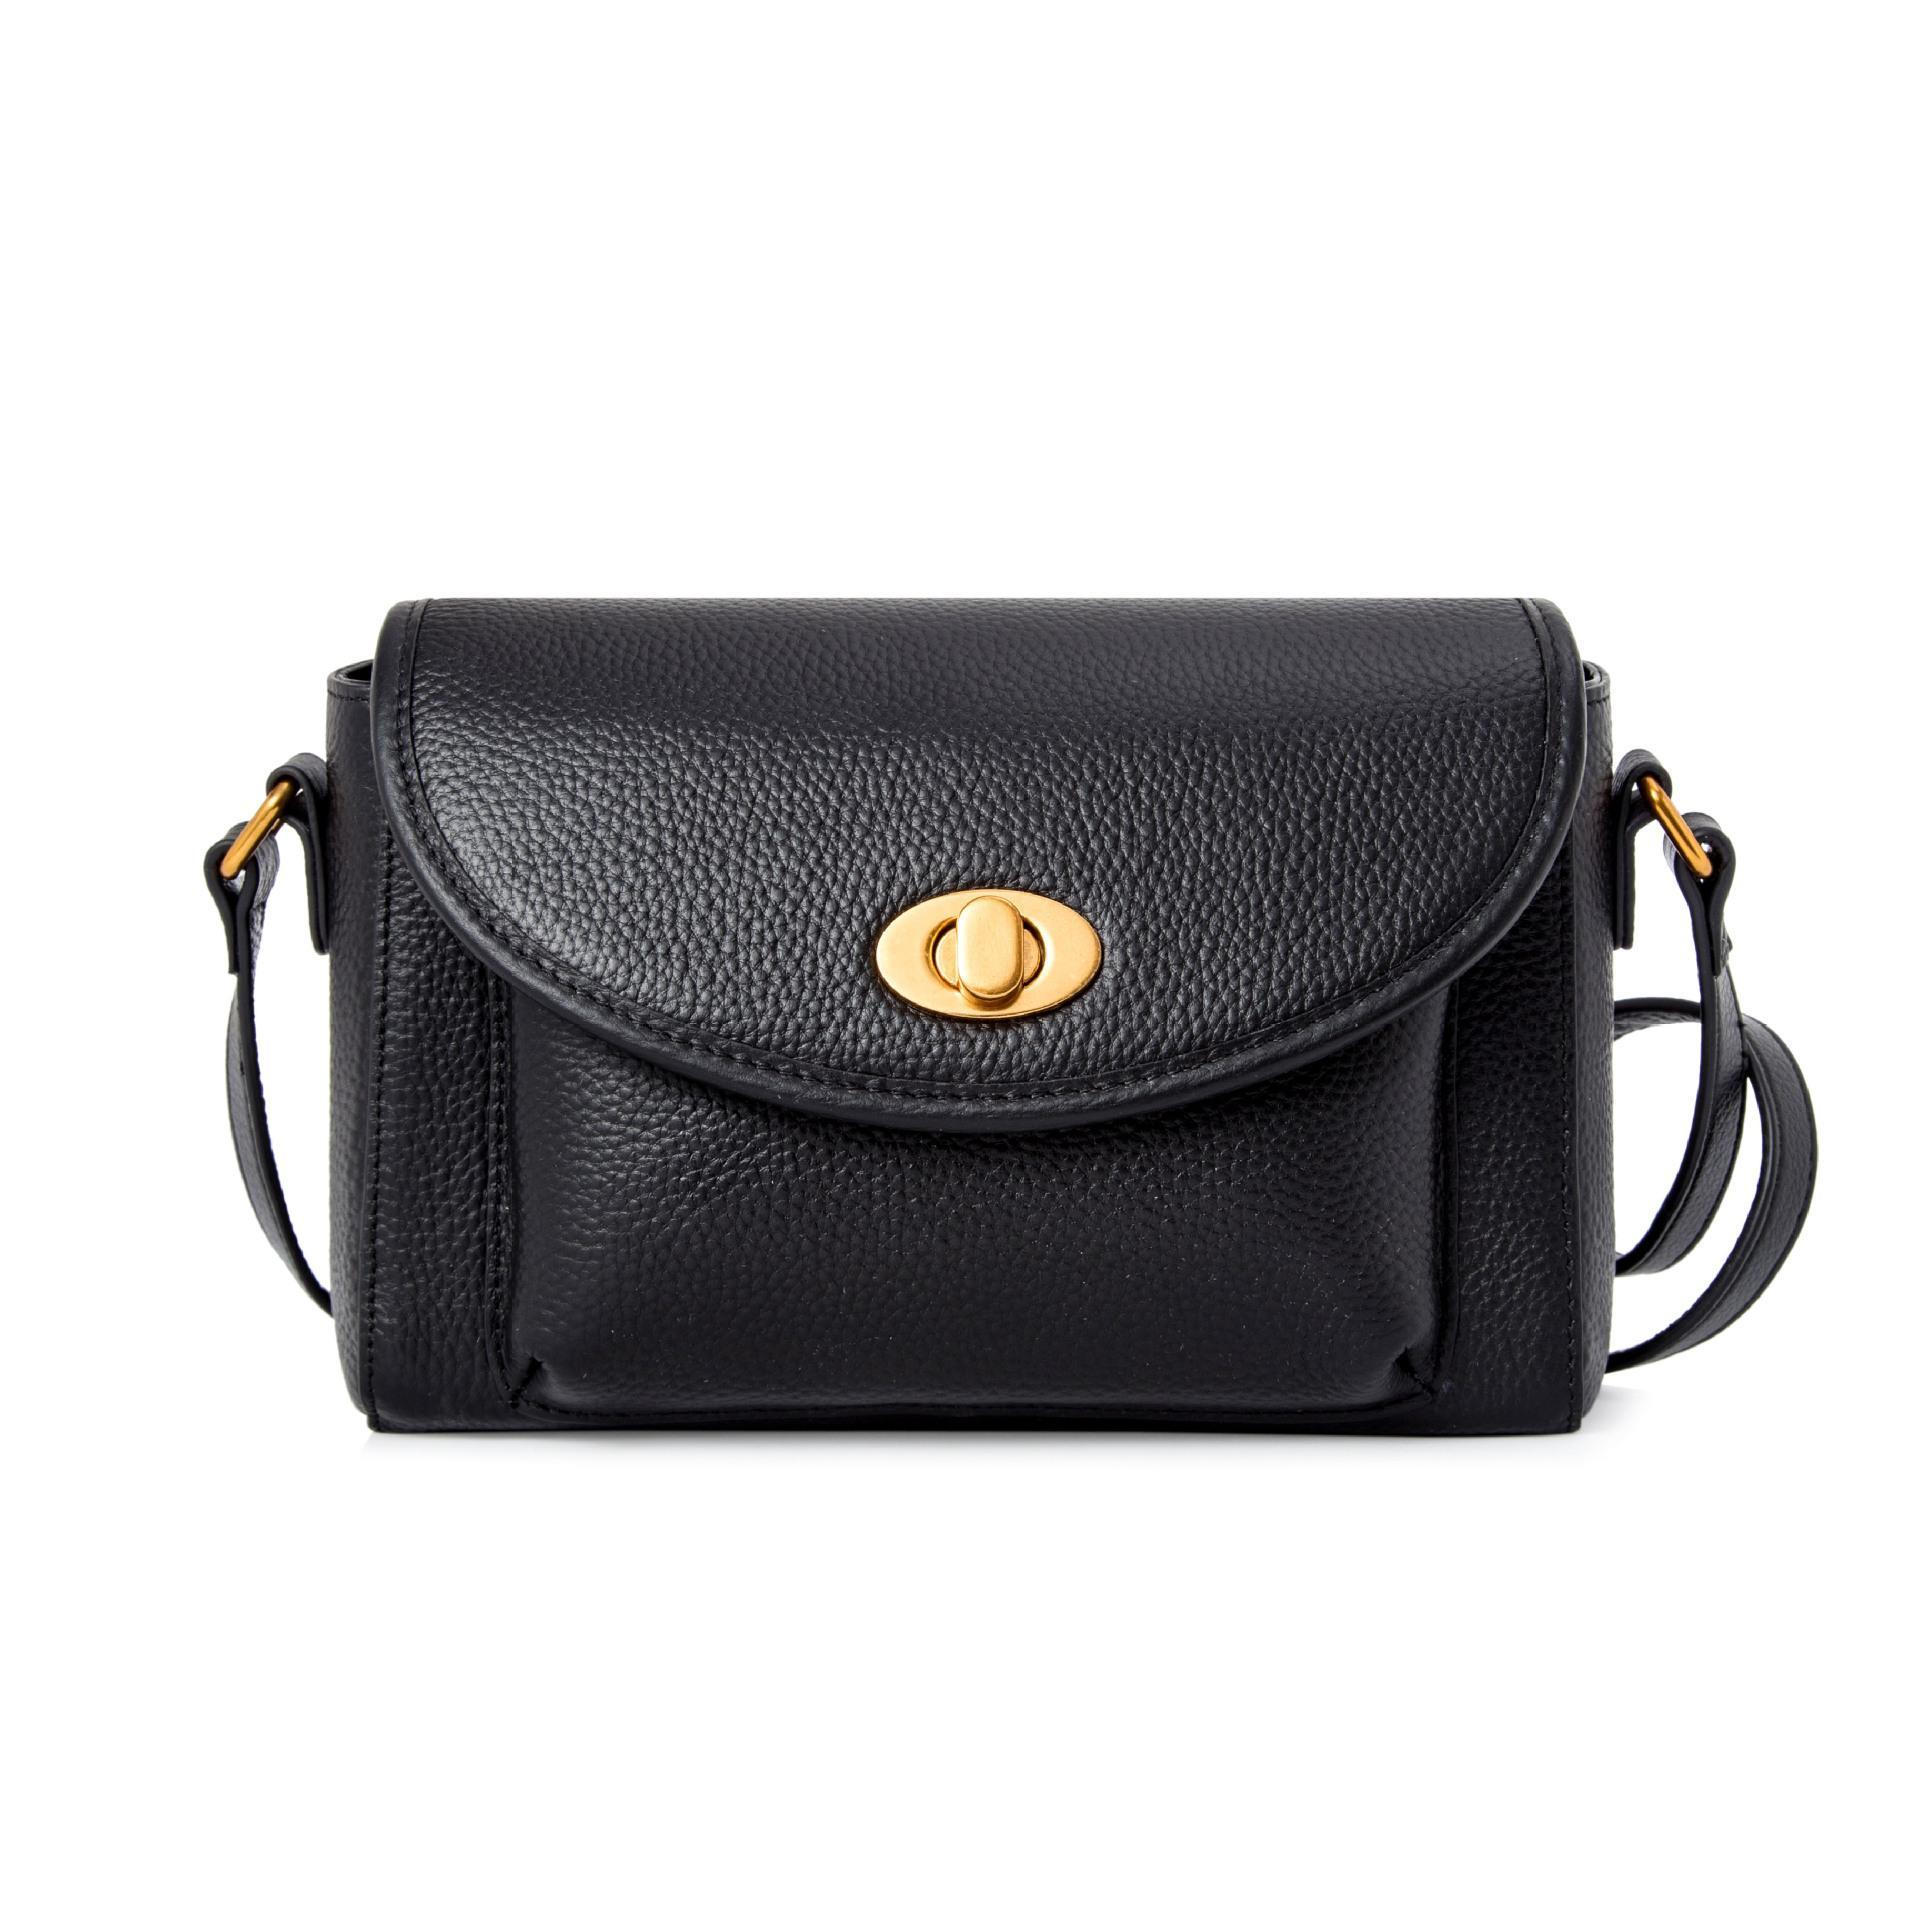 Belle2019 Messenger Genuine Woman Ma'am Single Shoulder Small Square Package More Function A Leather Bag